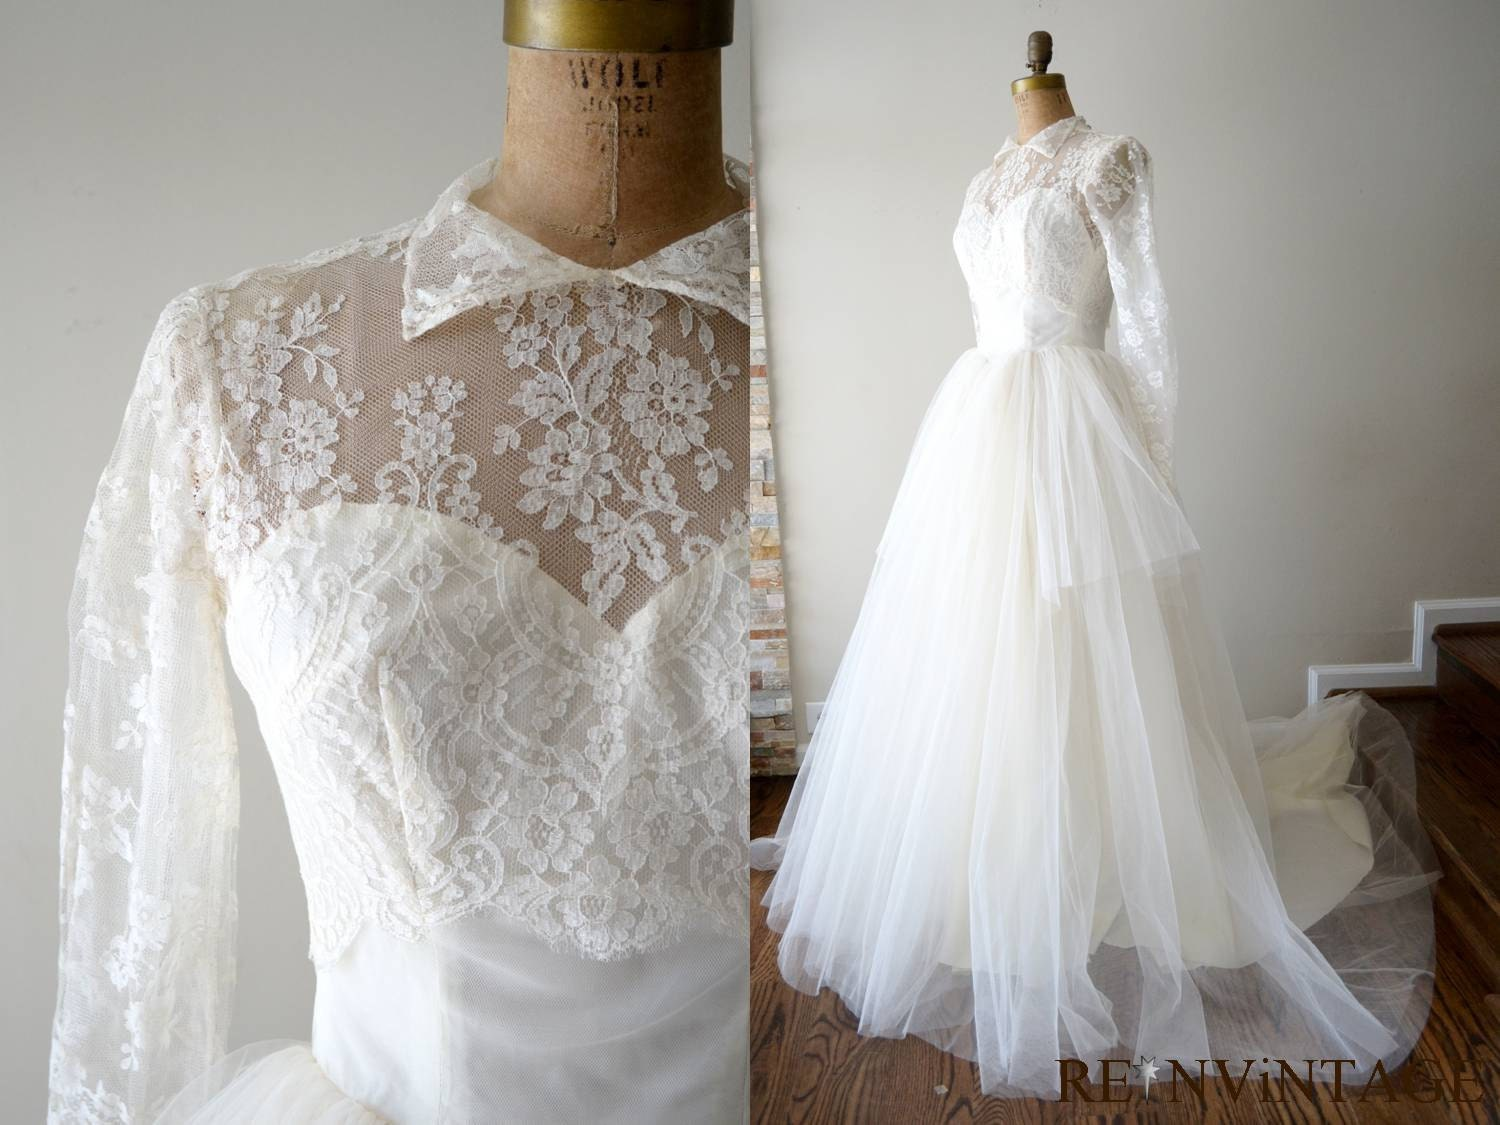 Artsancrafts fave etsy finds vintage wedding dresses for Wedding dress on etsy